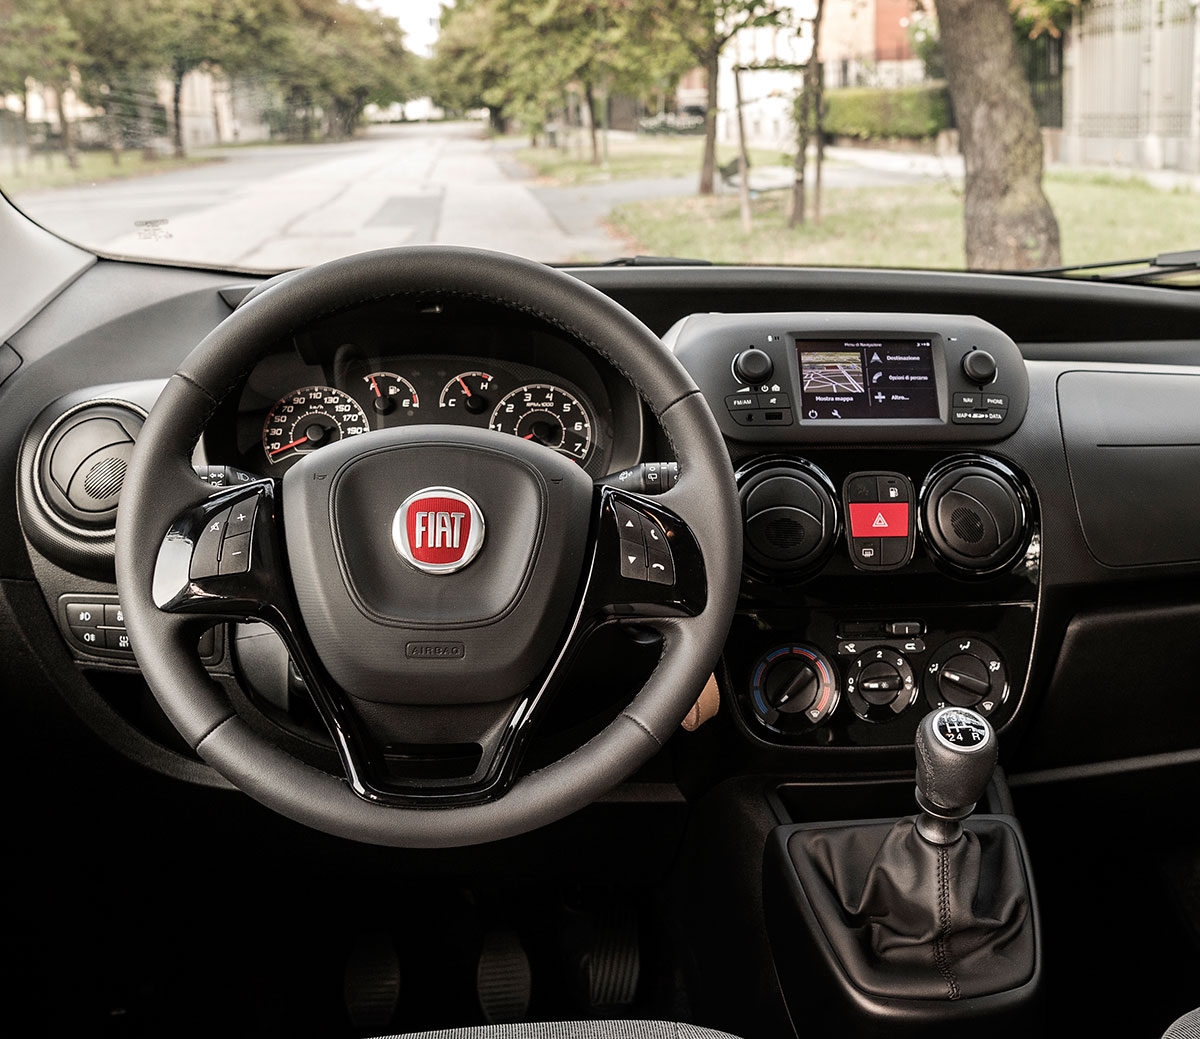 FIAT Fiorino/Qubo Multimedia And Navigation Unit